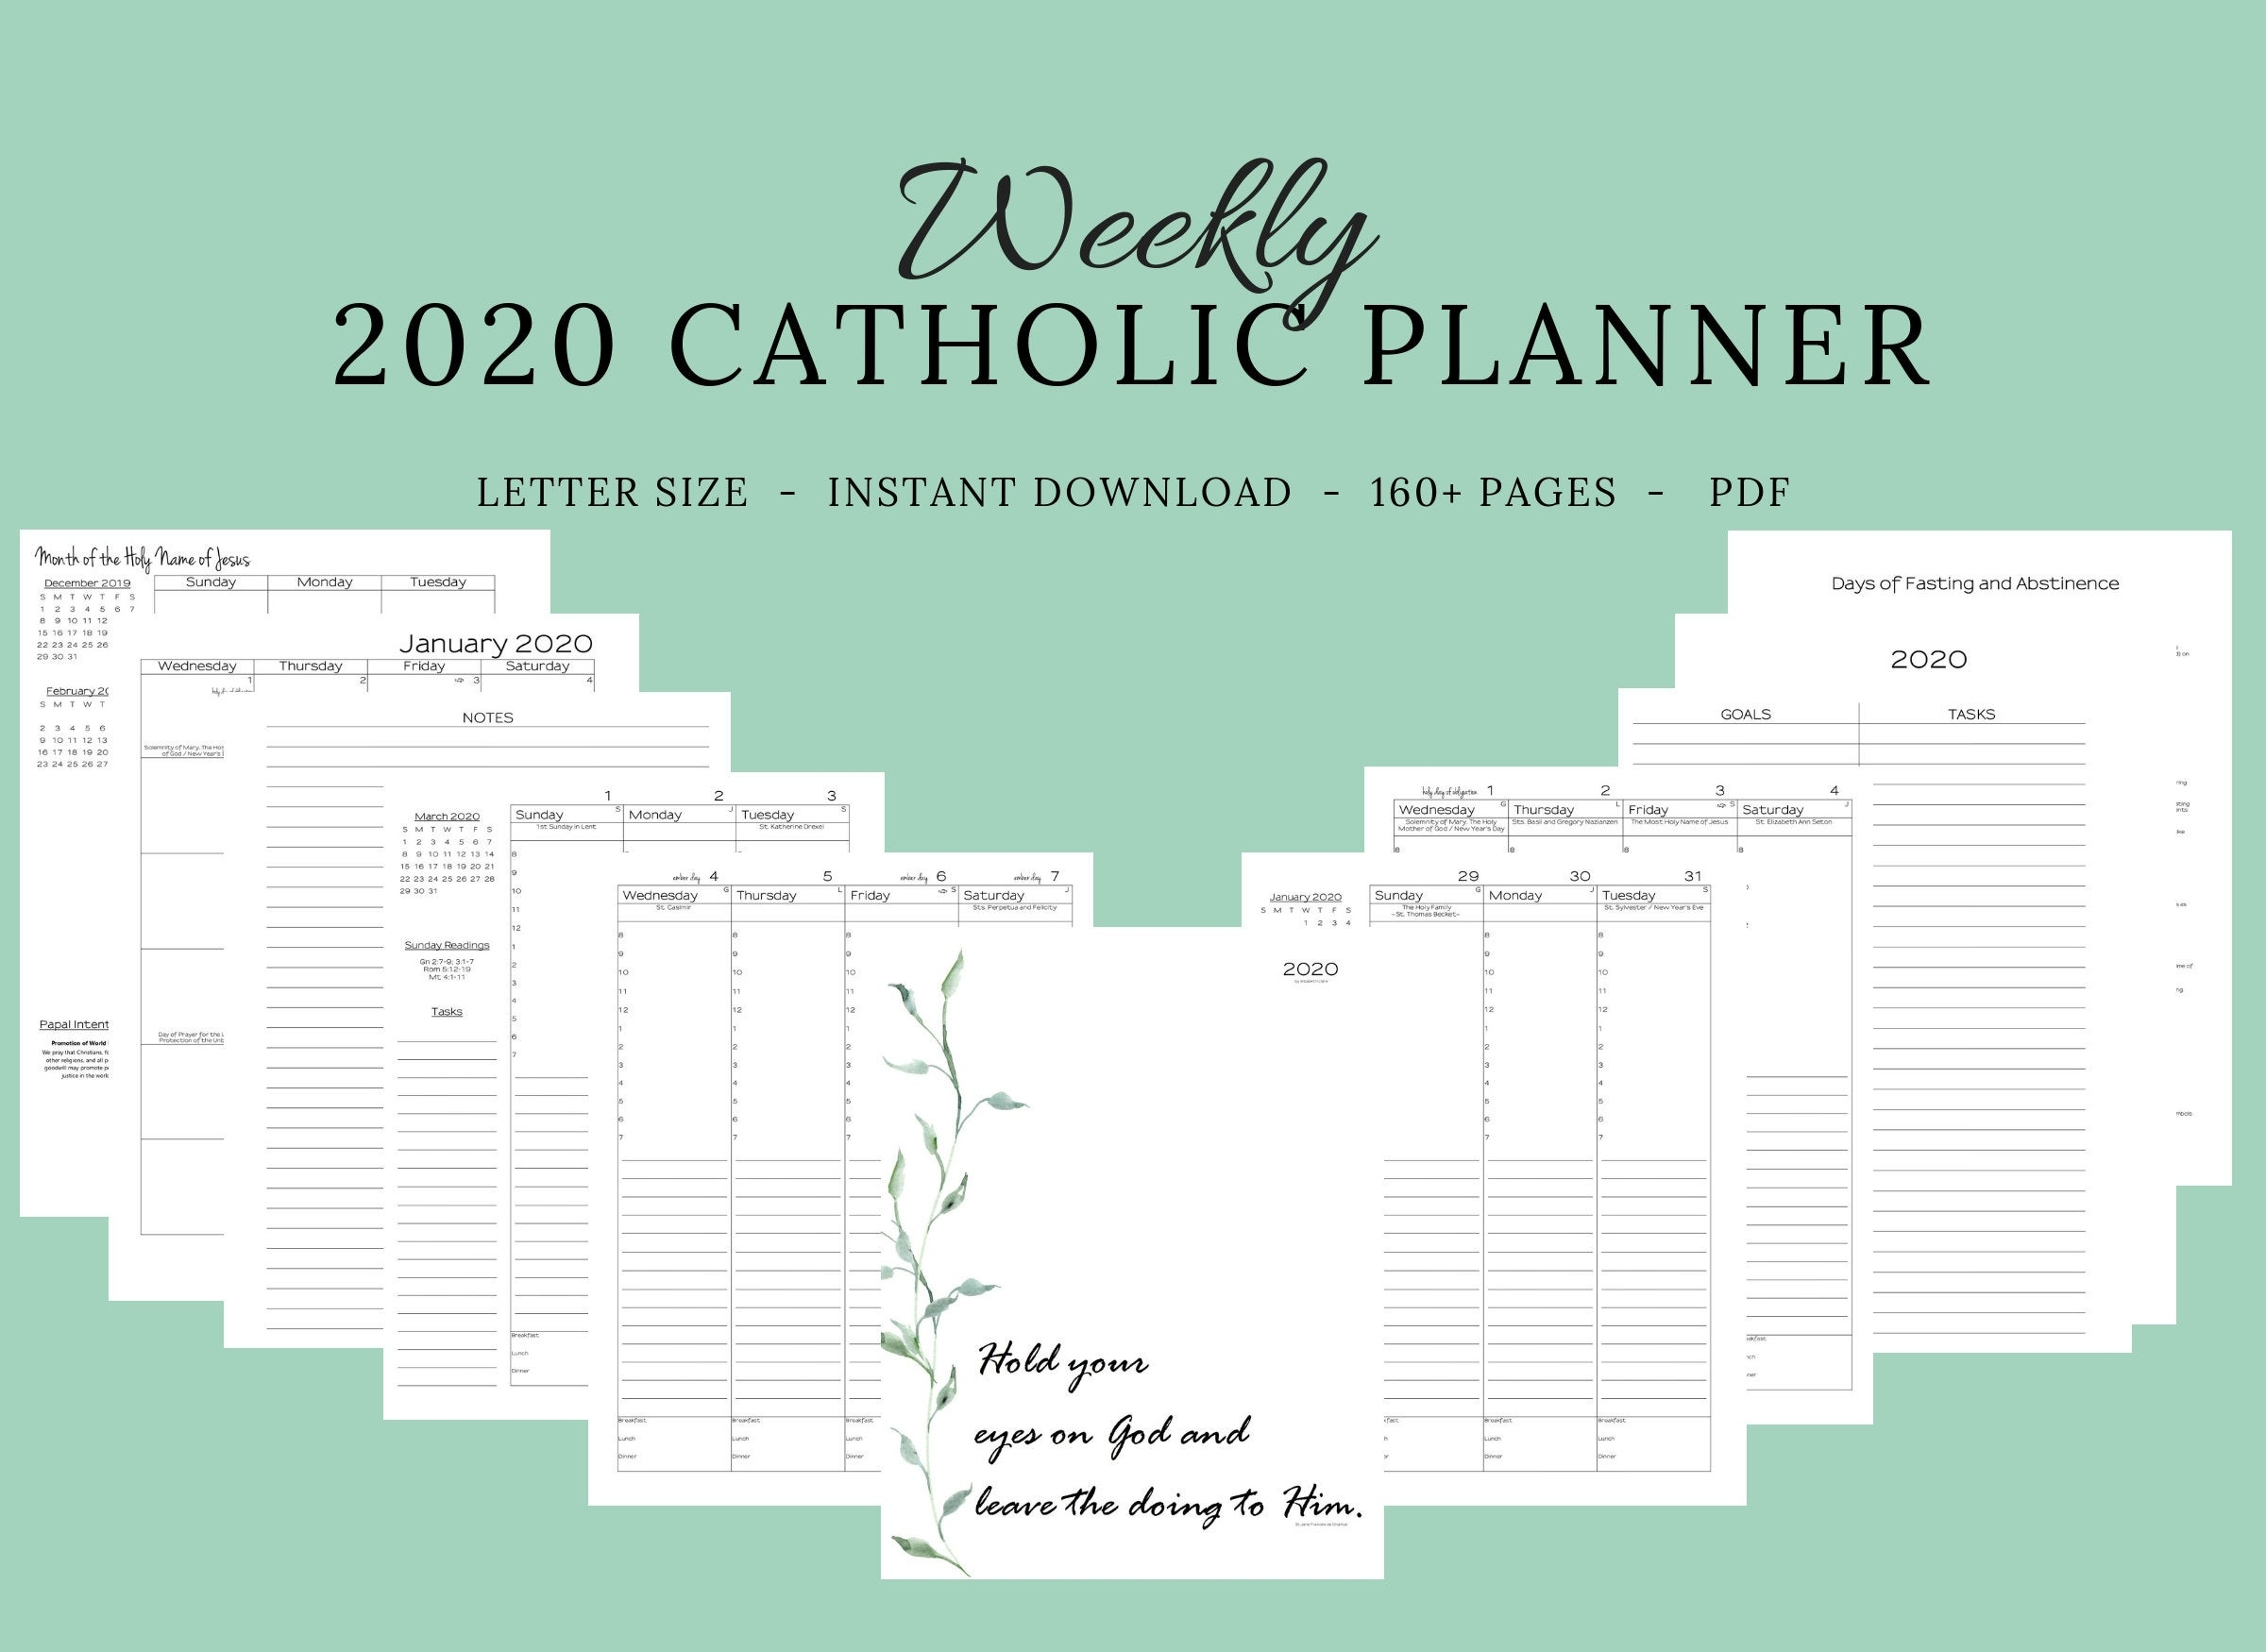 2020 Catholic Planner Weekly Printable: Daily Planner / | Etsy in Catholic Liturgical Calendar 2020 Pdf